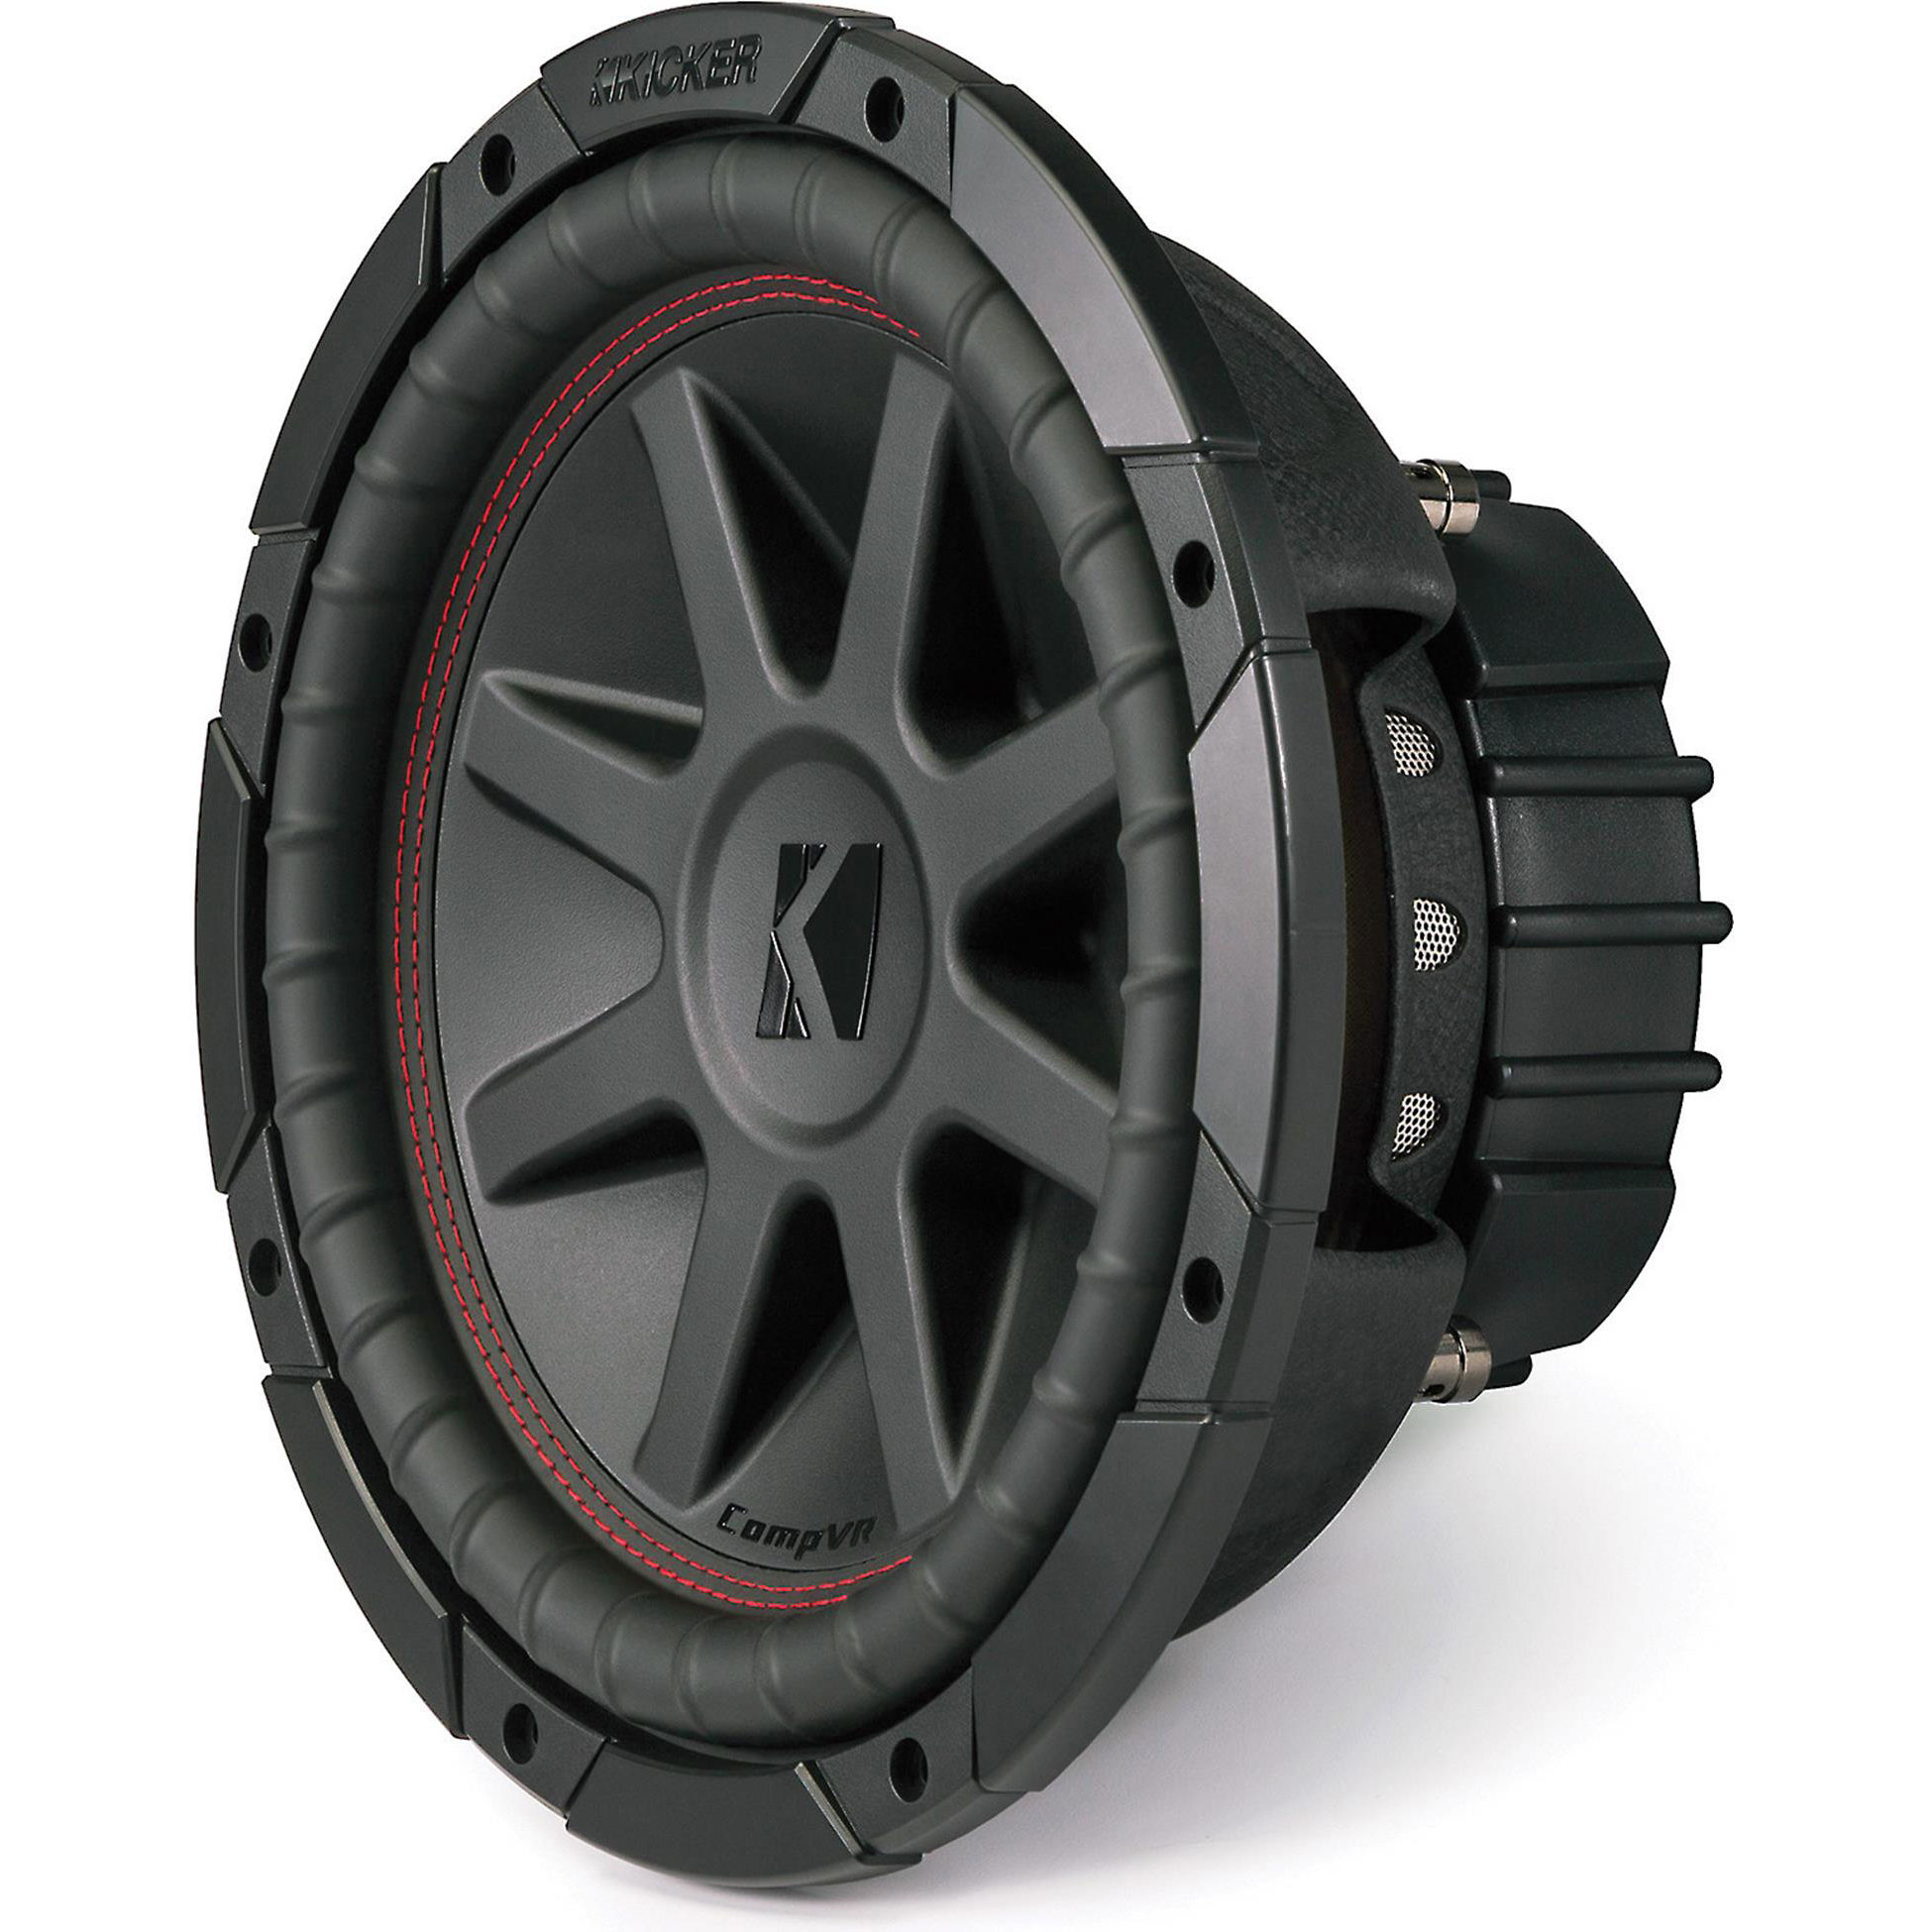 "Kicker 43CVR104 10"" subwoofer with dual 4-ohm voice coils"